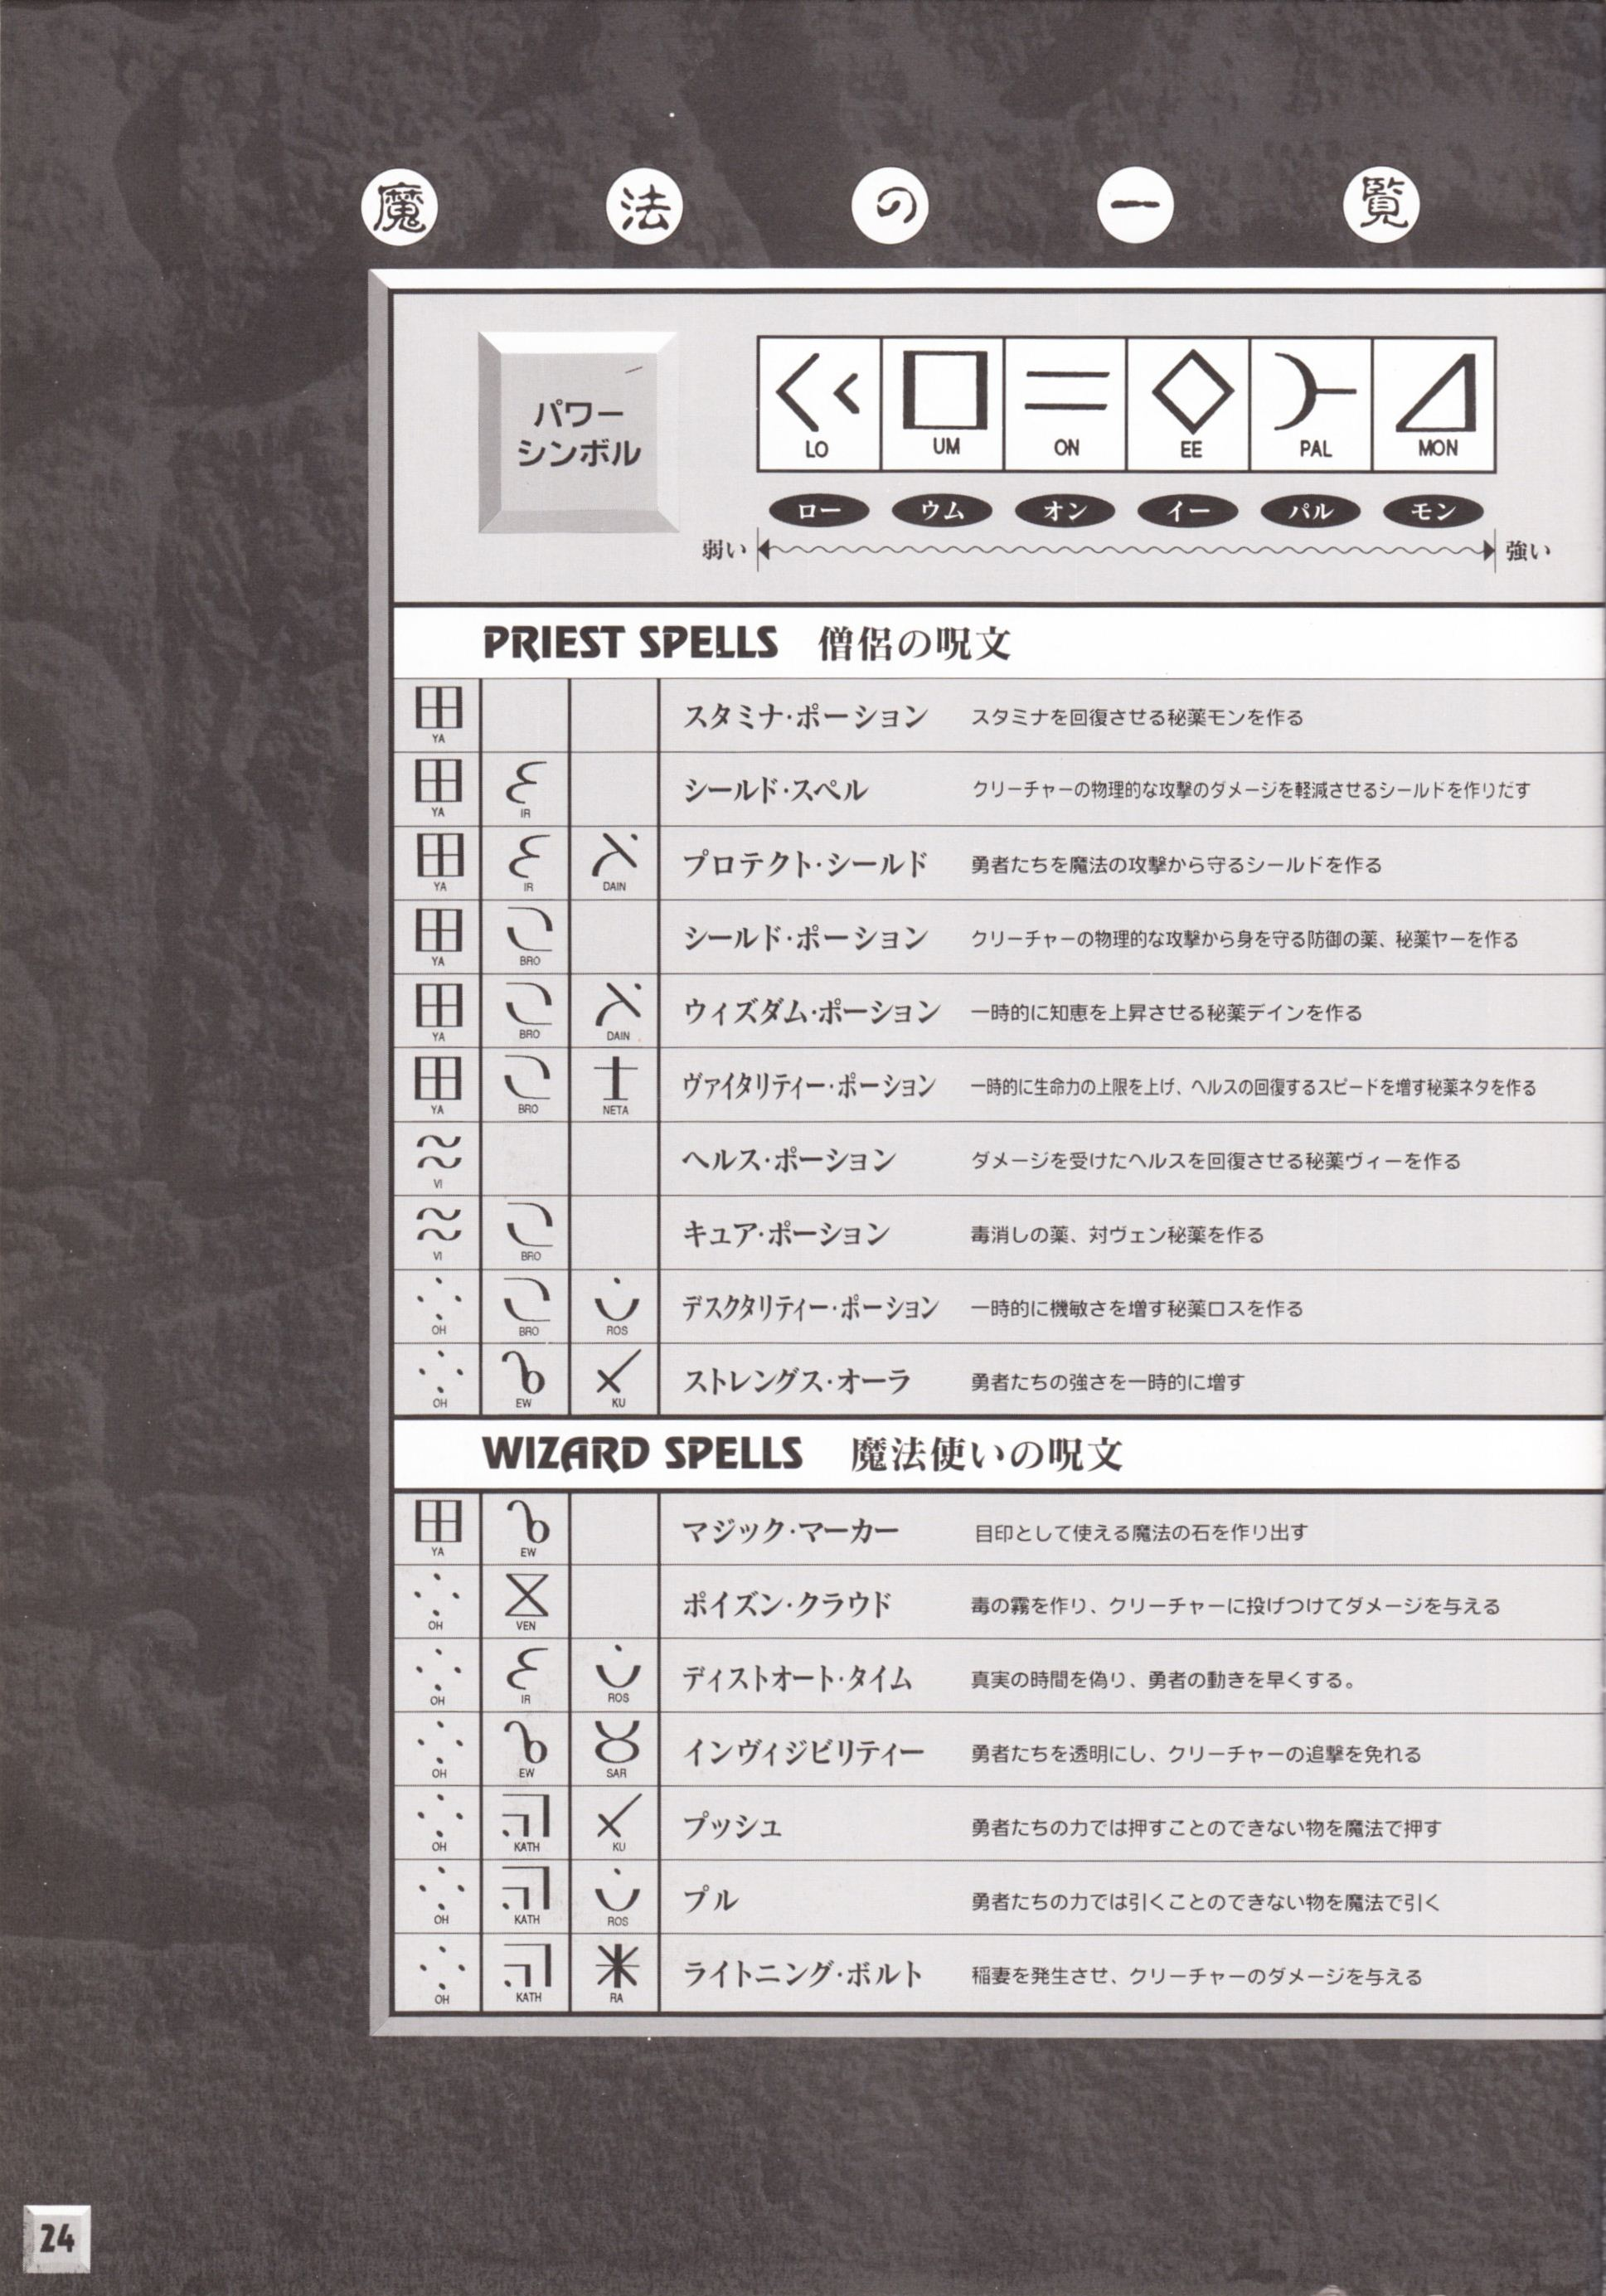 Game - Dungeon Master II - JP - PC-9801 - 3.5-inch - The Guidance Of Adventure - Page 026 - Scan